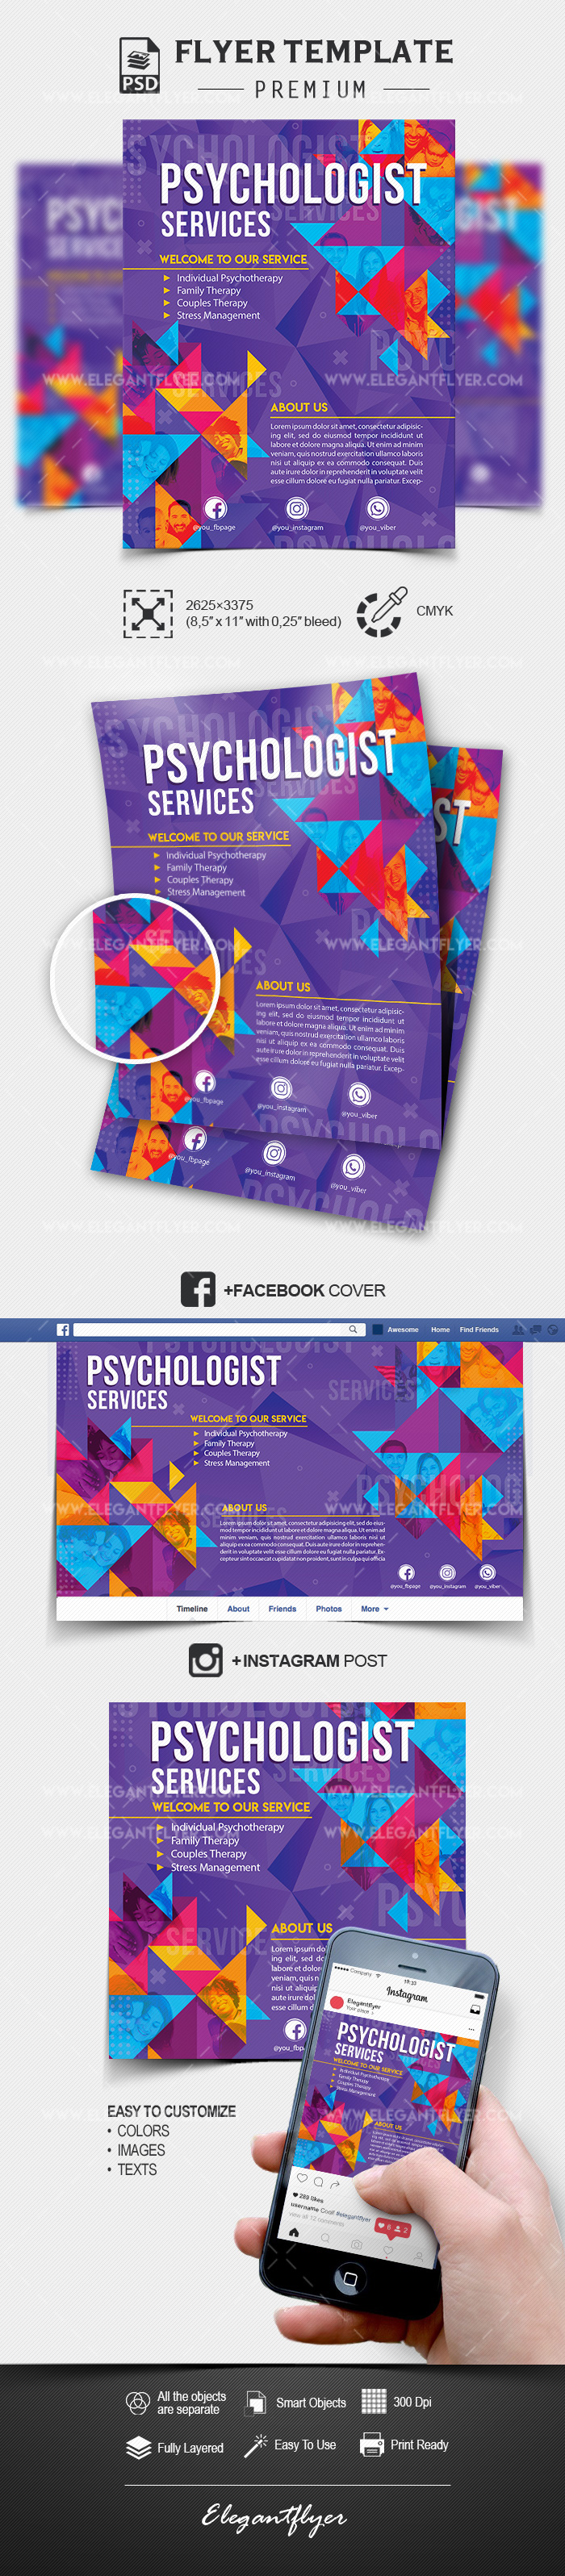 Psychologist Services – PSD Flyer Template + Facebook Cover + Instagram Post